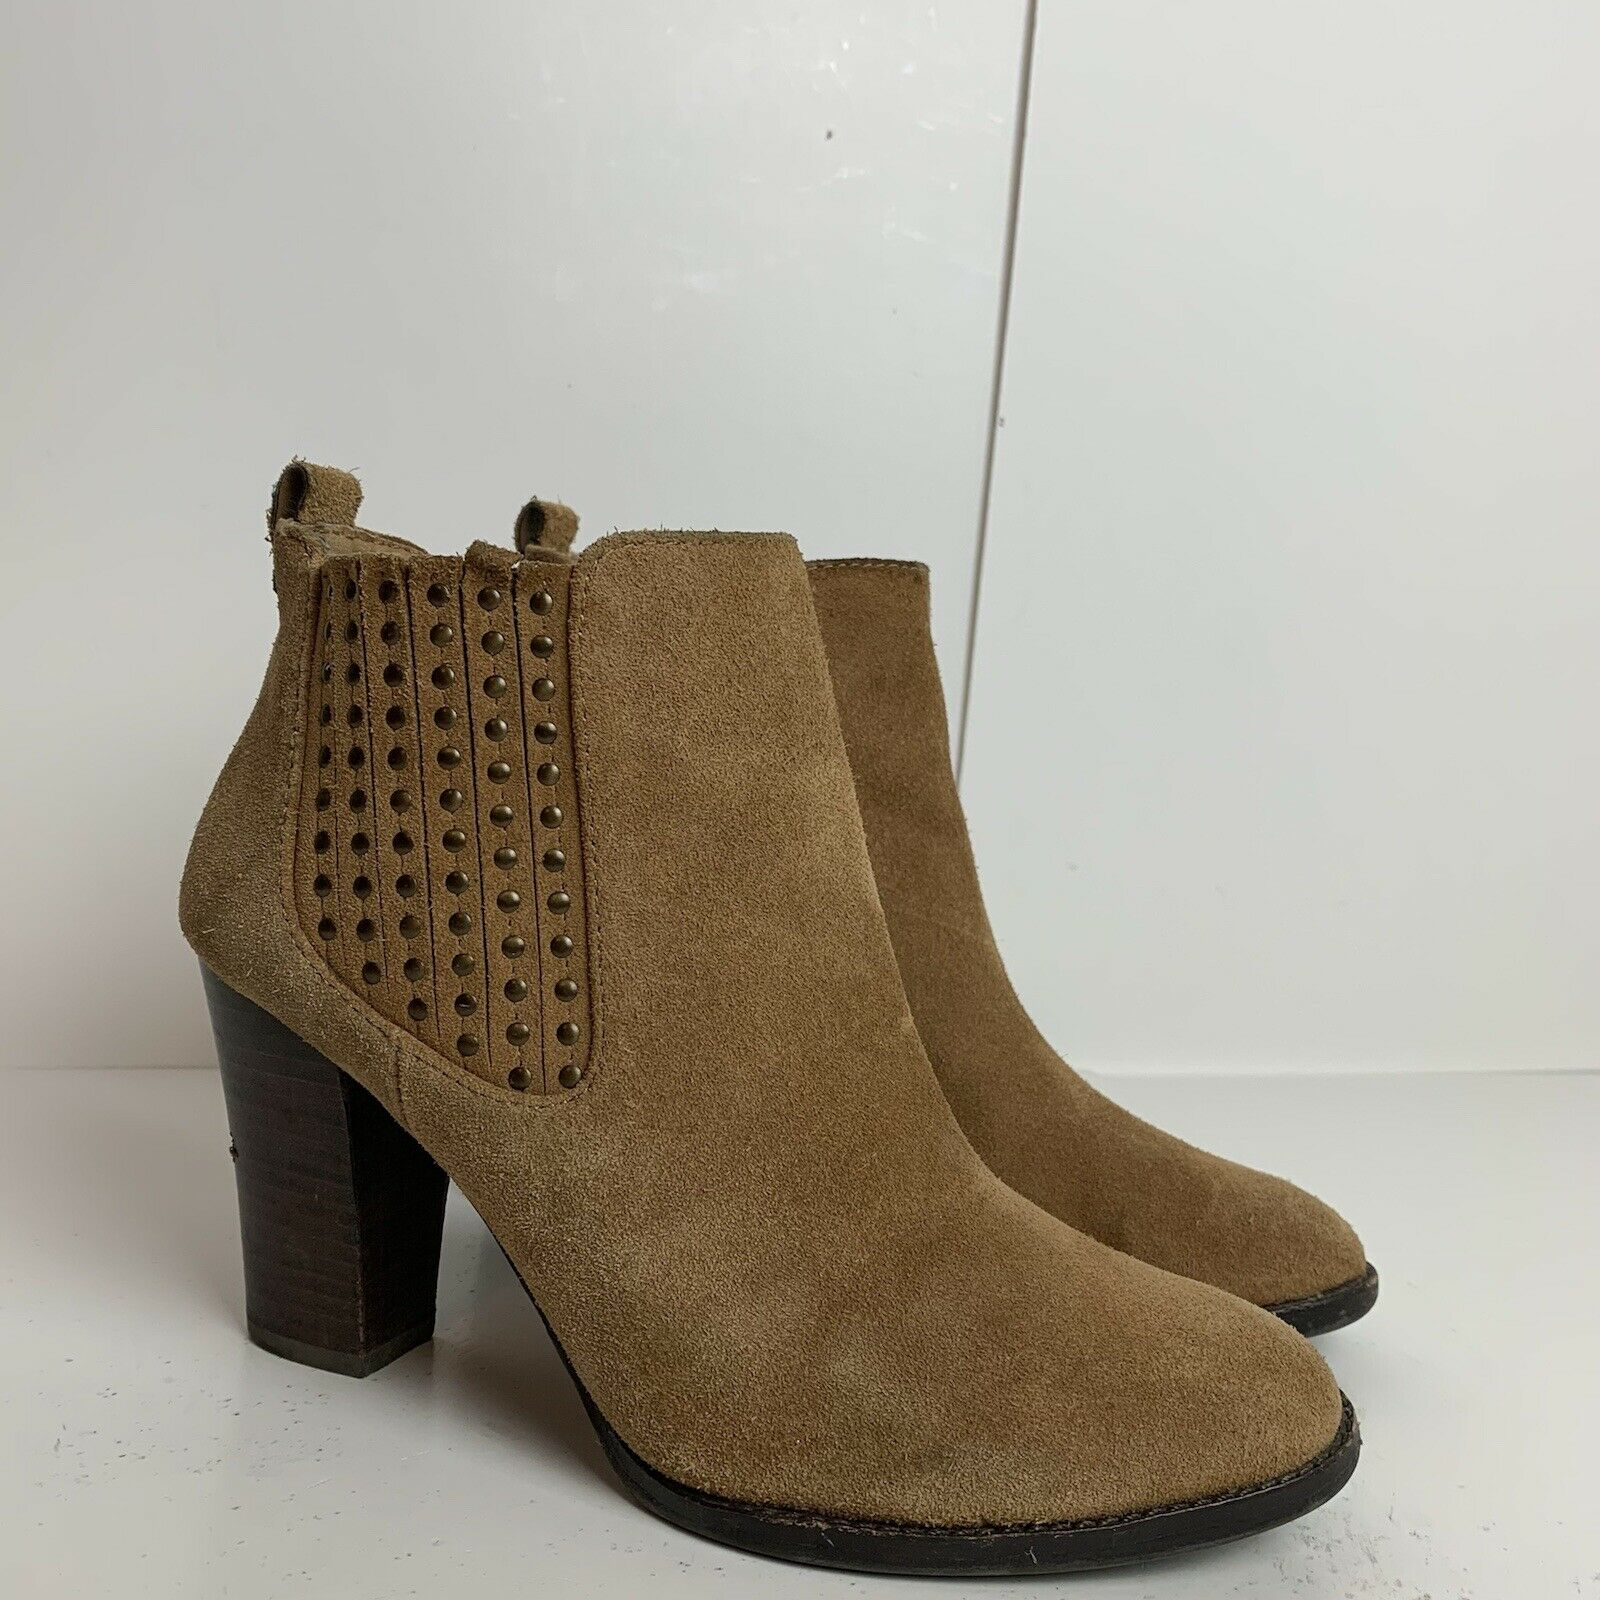 Antonio Melani Ankle Boots Heeled Brown Leather Studded Design Size 7 D5